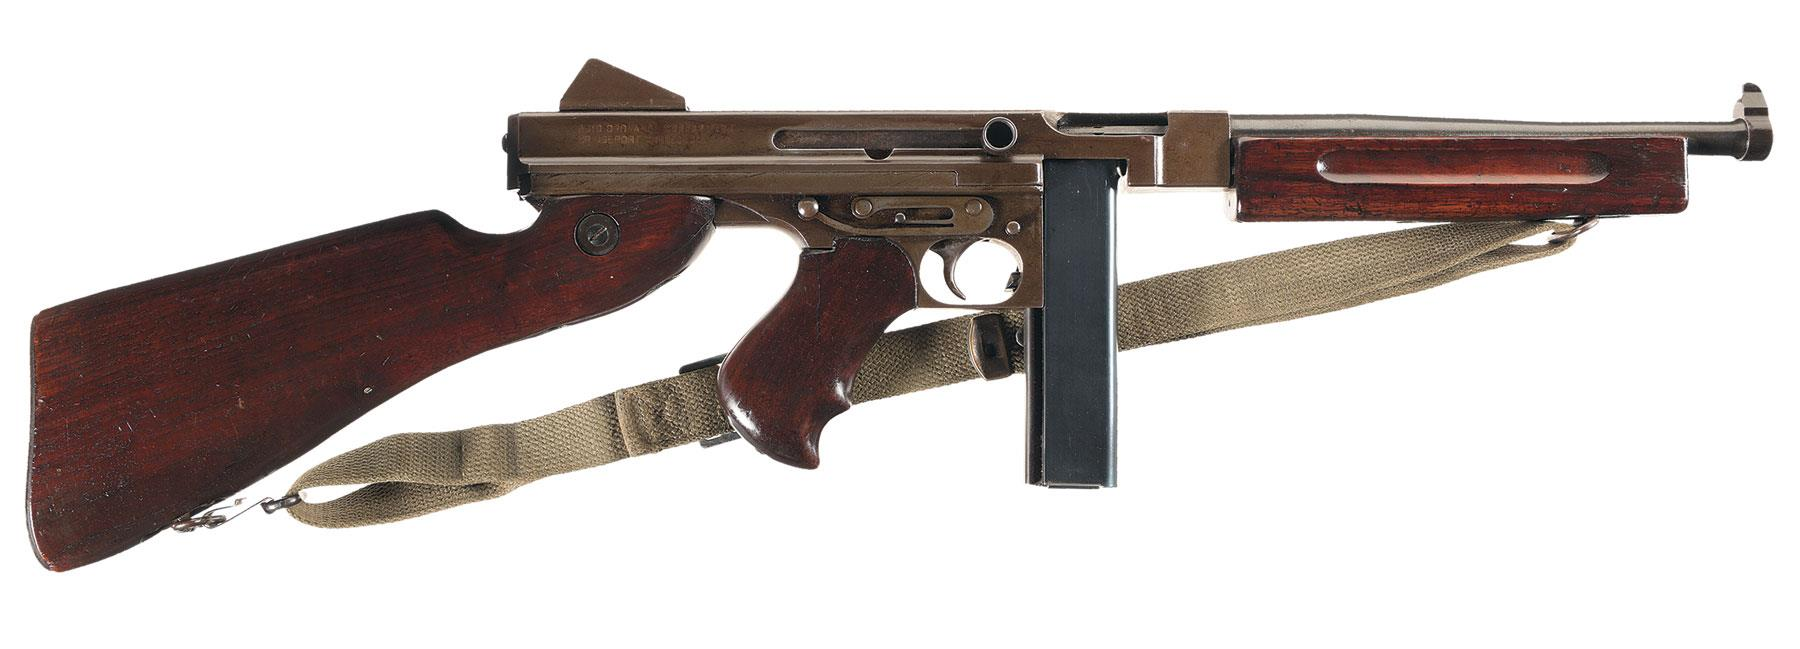 fb09cbaff6f37 Exceptional World War II Thompson M1A1 Submachine Gun with Acces